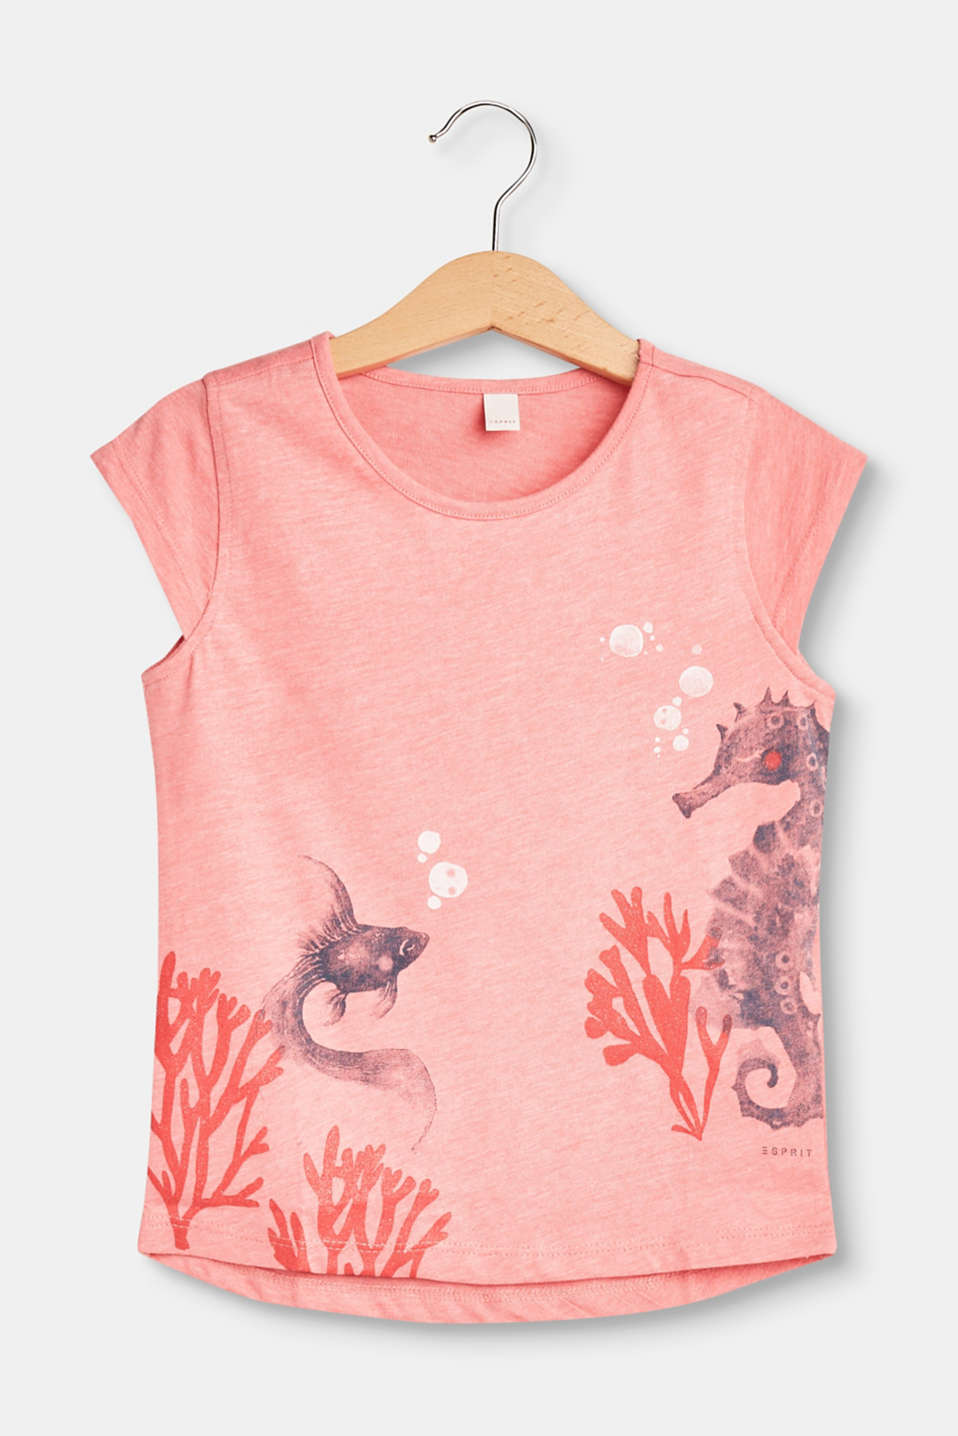 The seahorse print and glittery coral give this soft T-shirt a particularly pretty look.